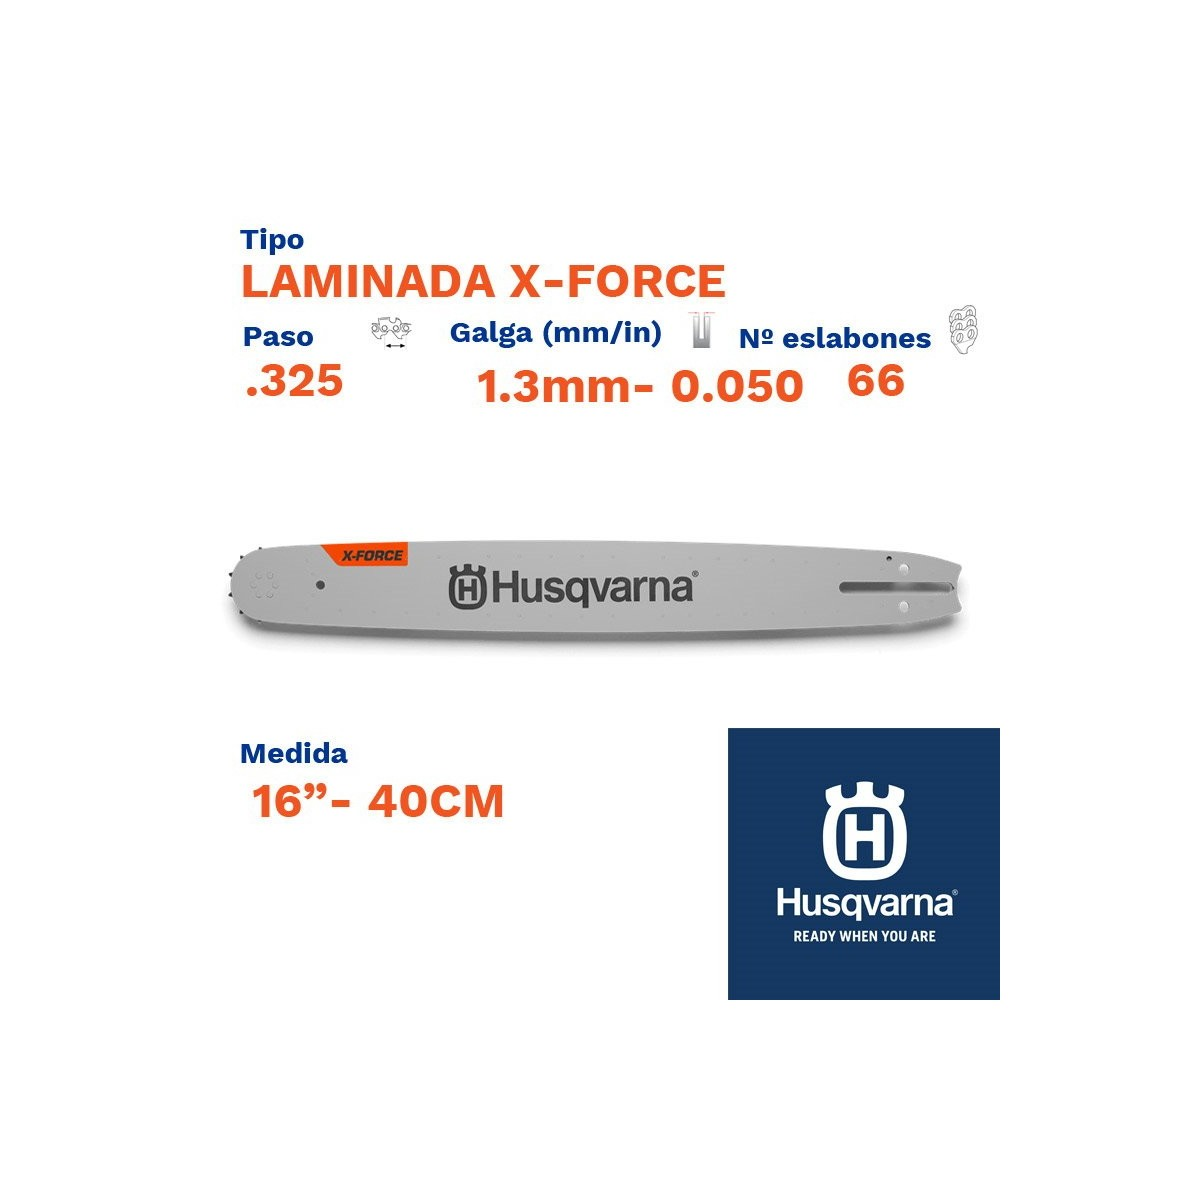 "Husqvarna espada laminada x-force 1.3mm 66 eslabones-pc .325  16""- 40cm"